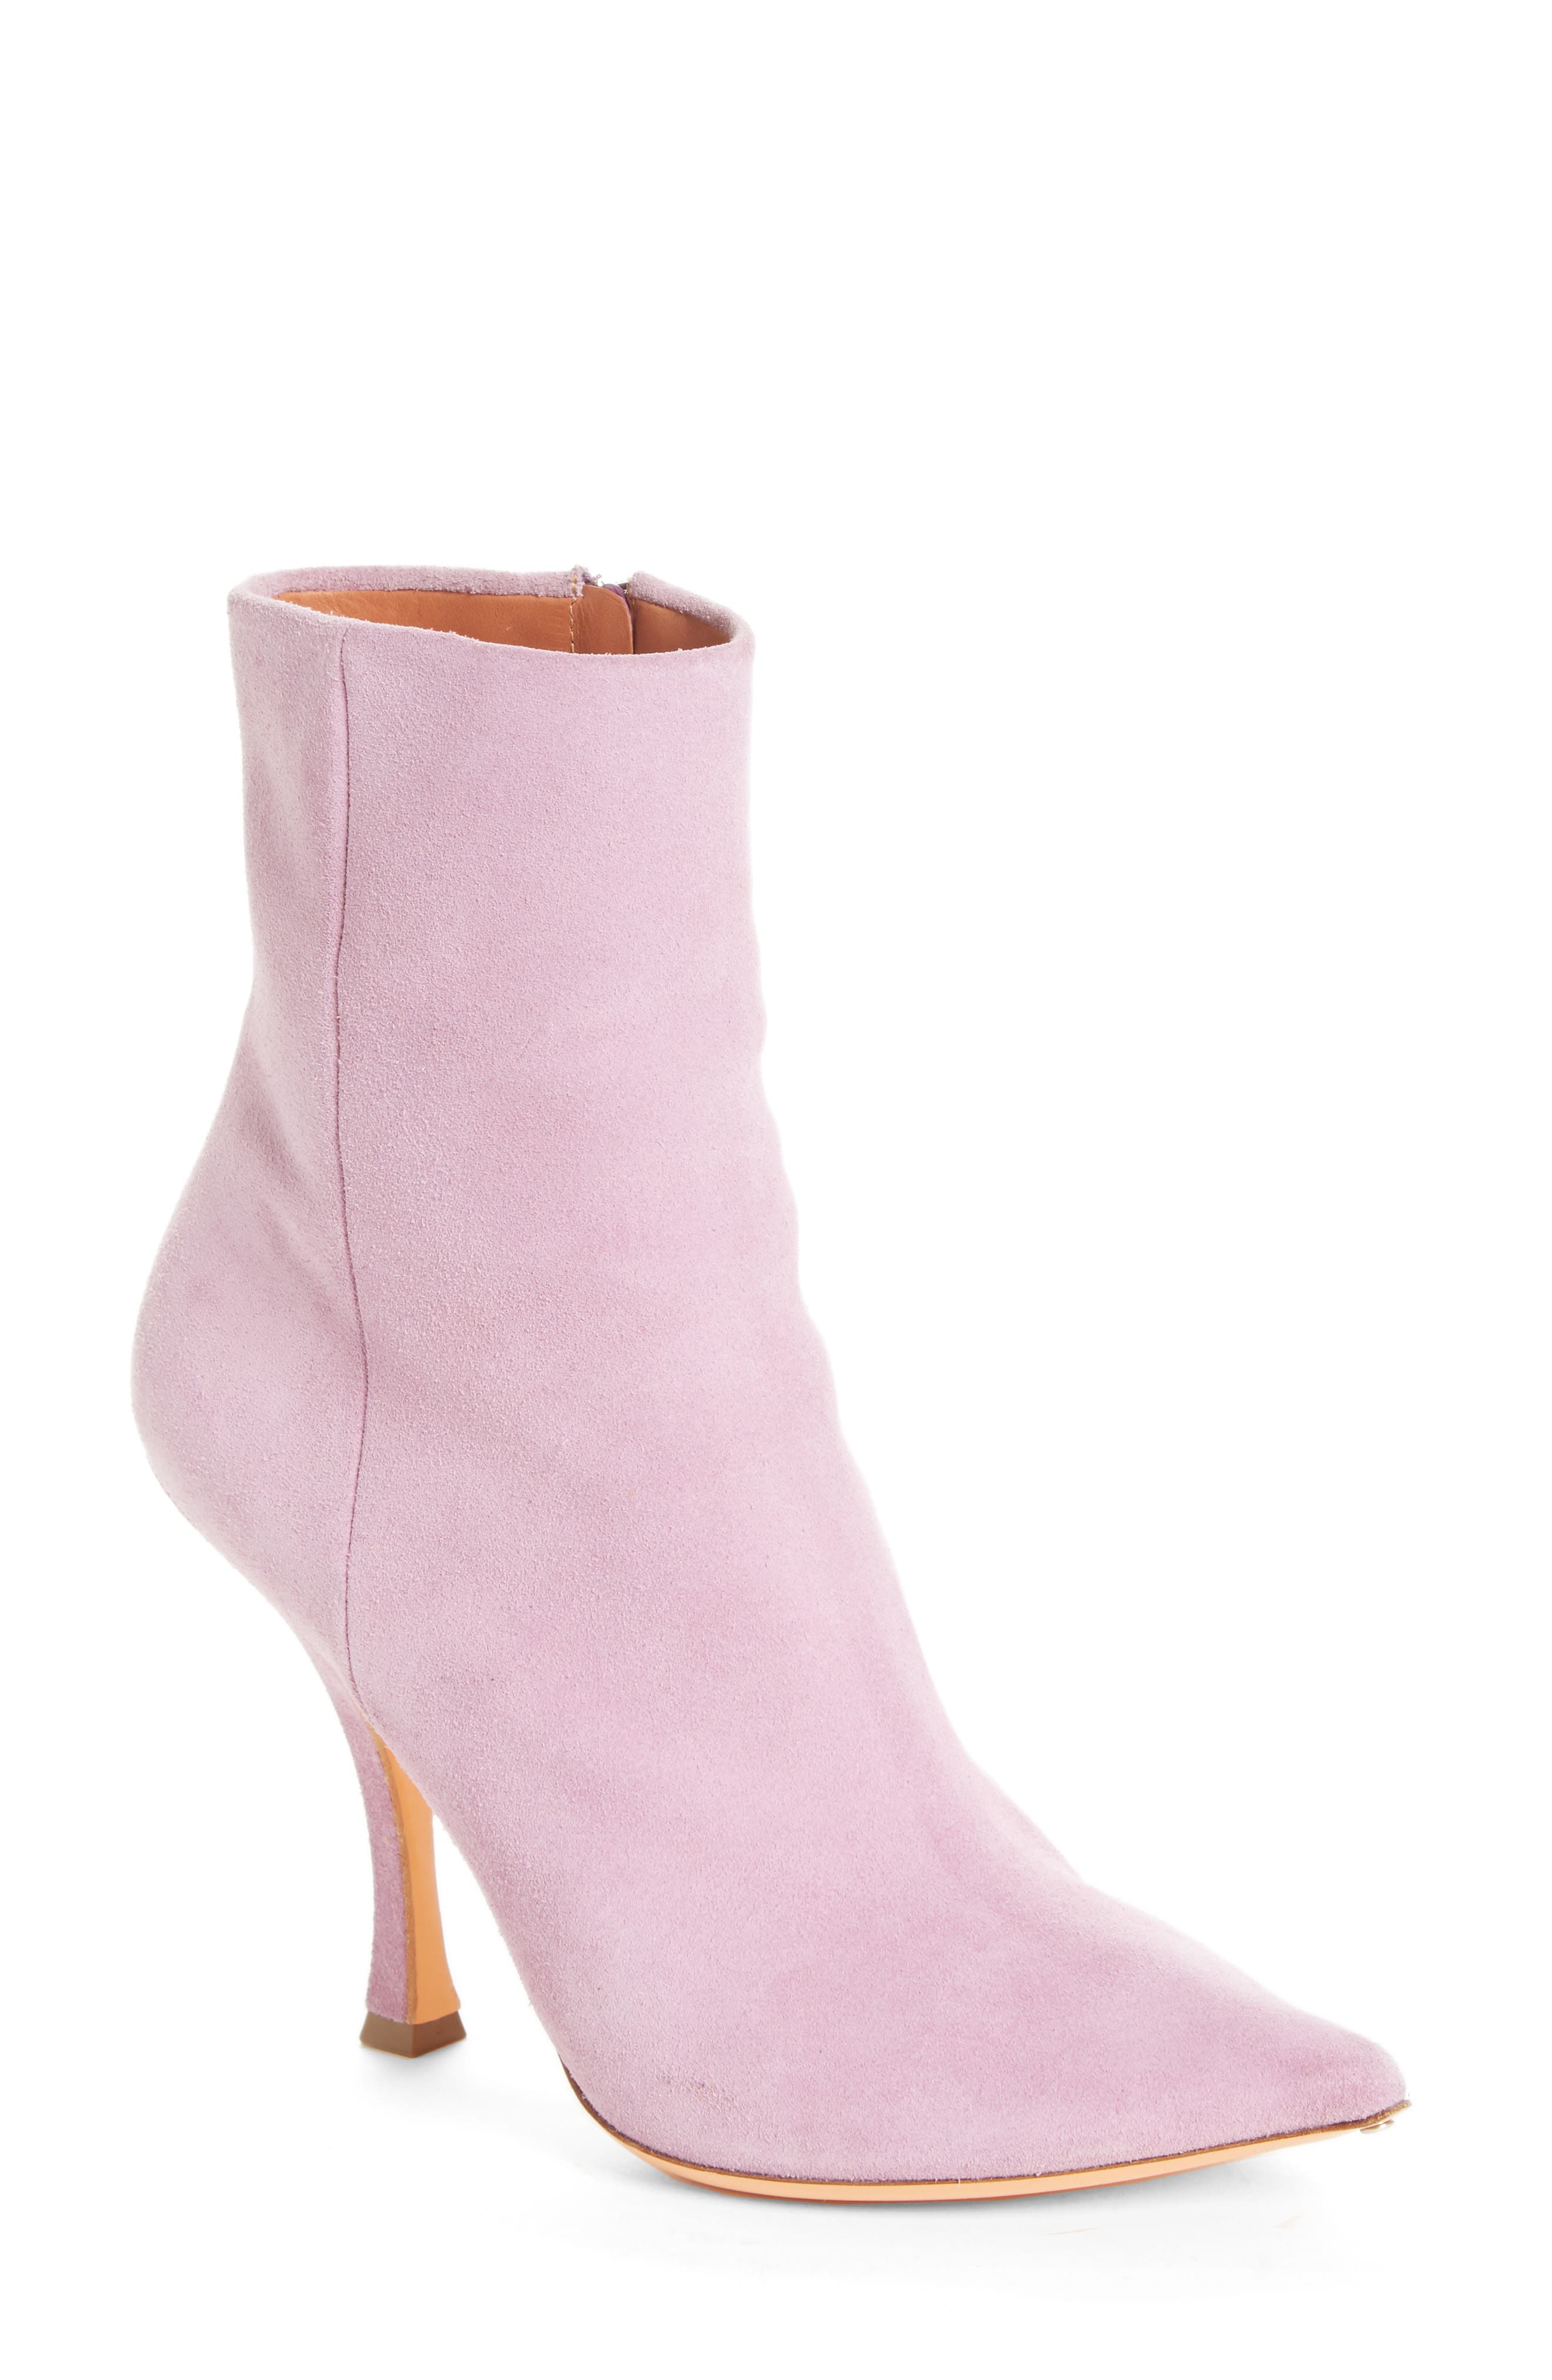 Alternate Image 1 Selected - Y/Project Suede Ankle Boot (Women)